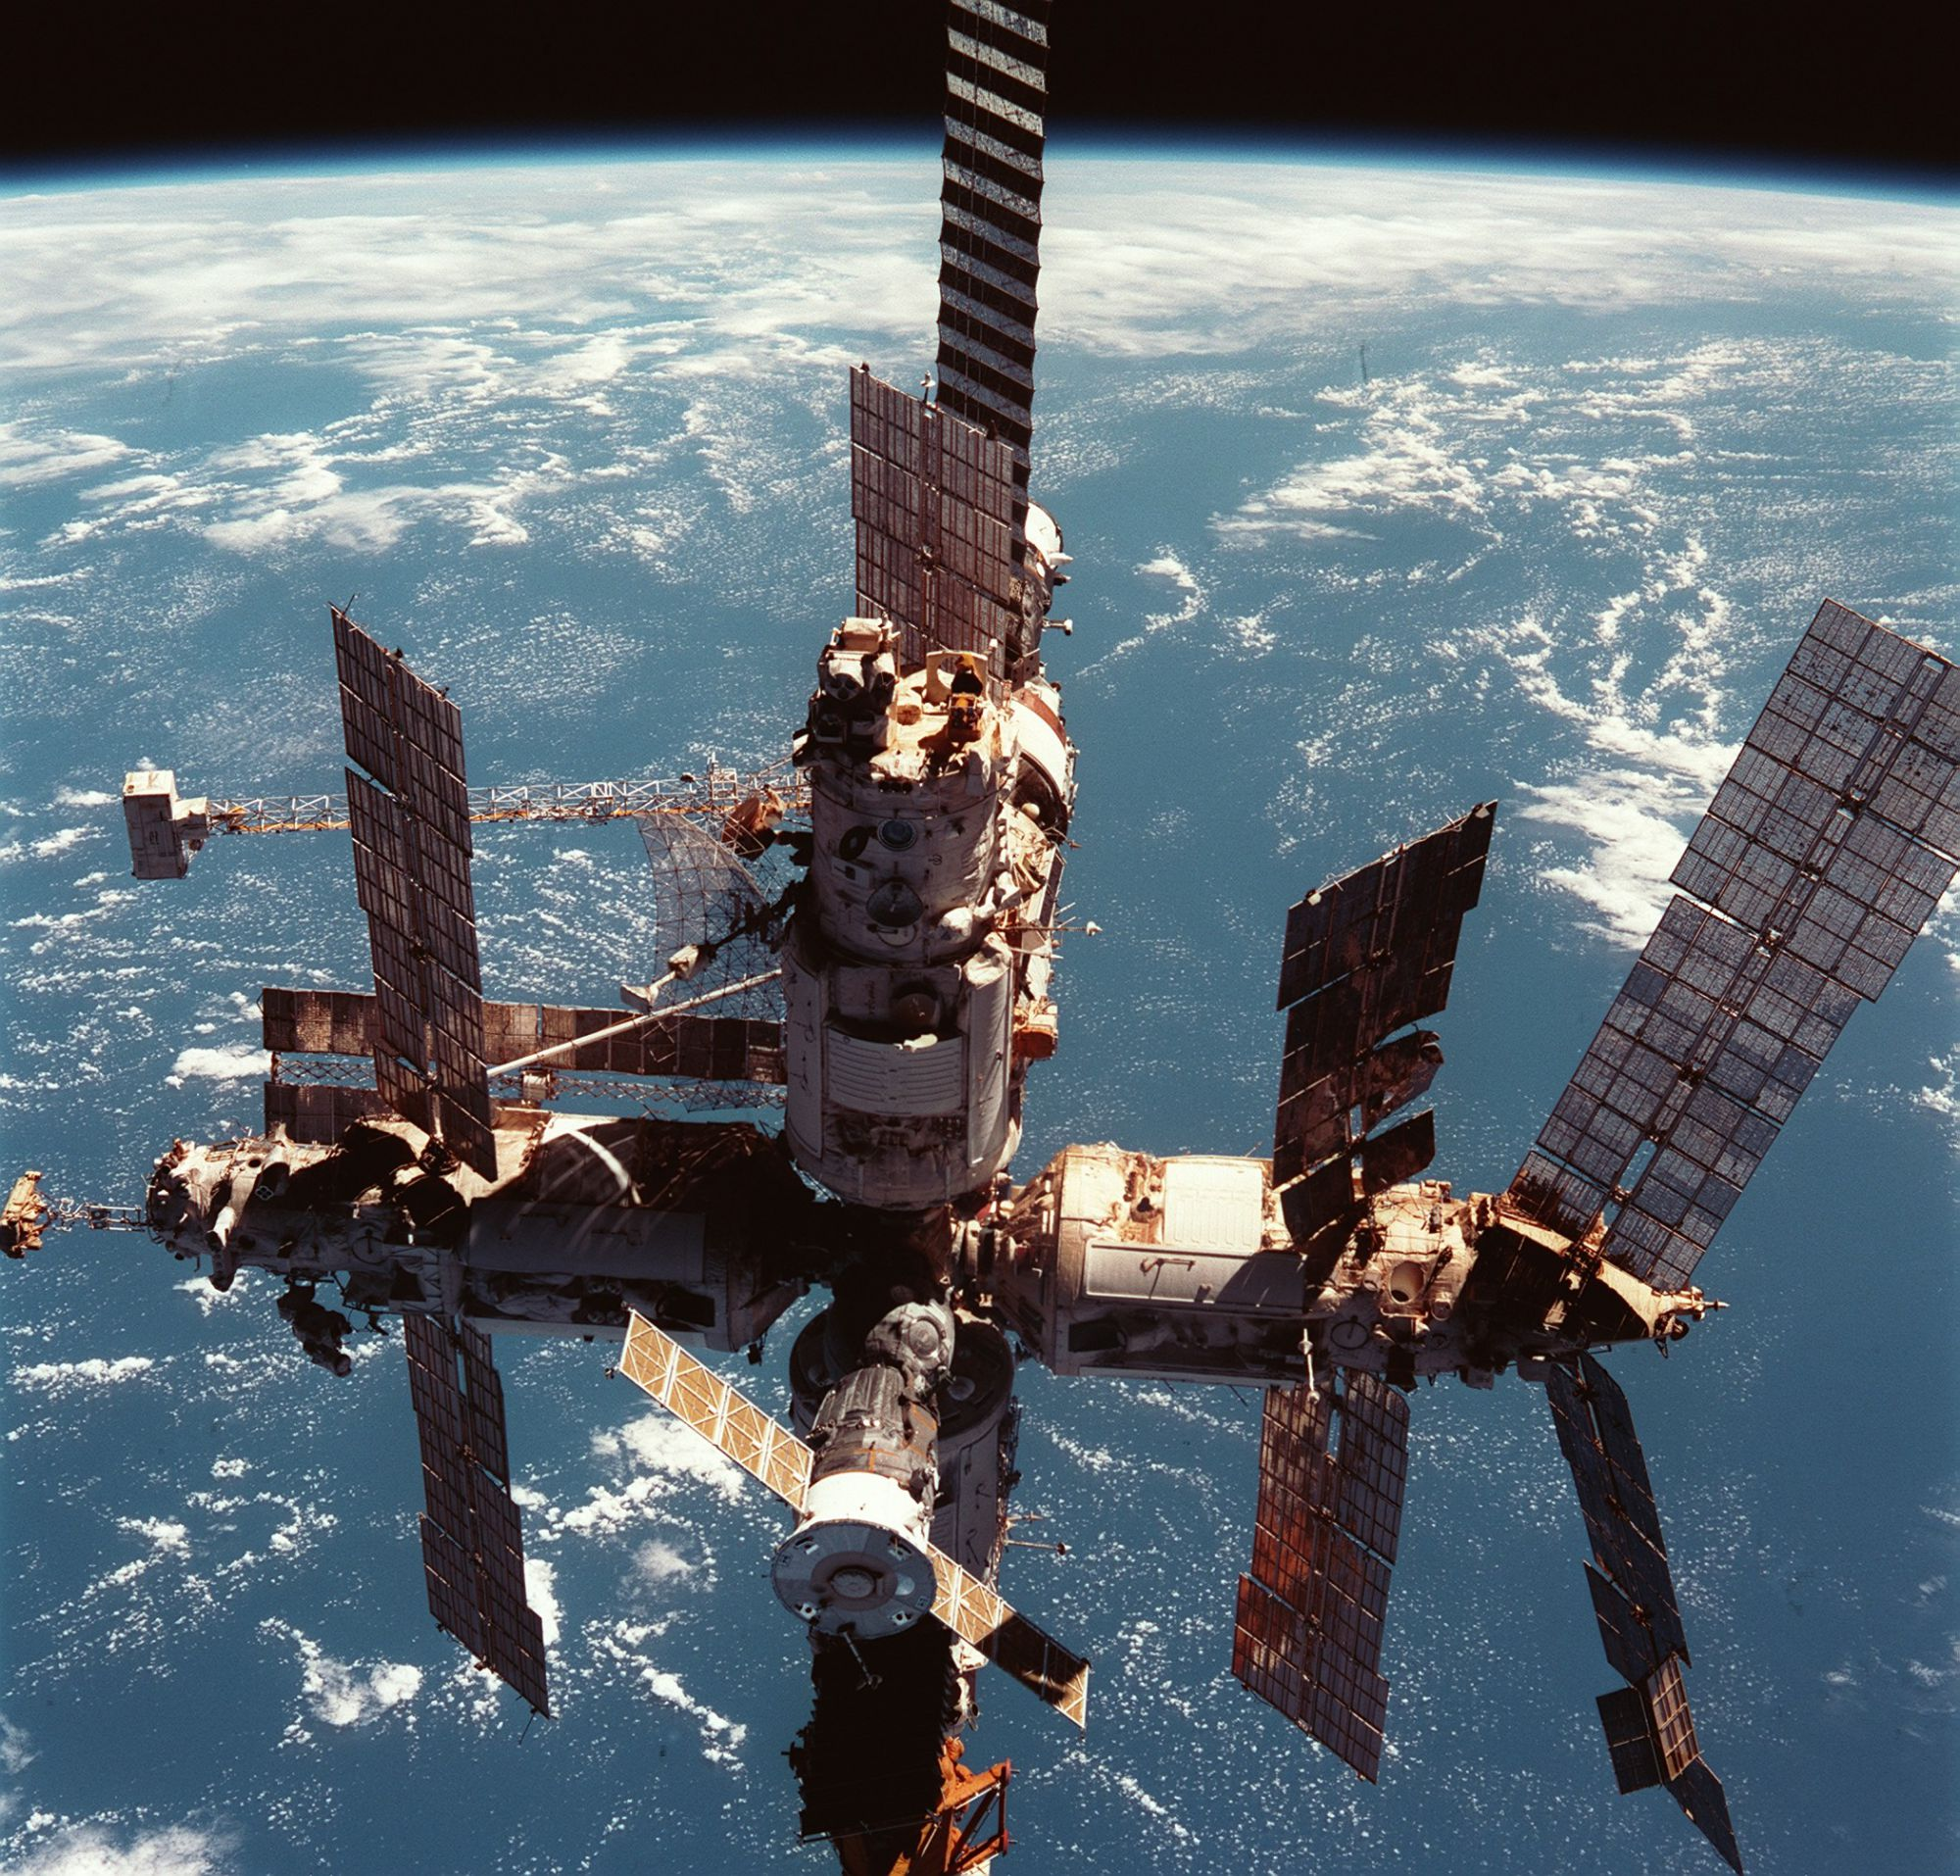 The Mir station photographed from an American shuttle in 1998. Credit NASA